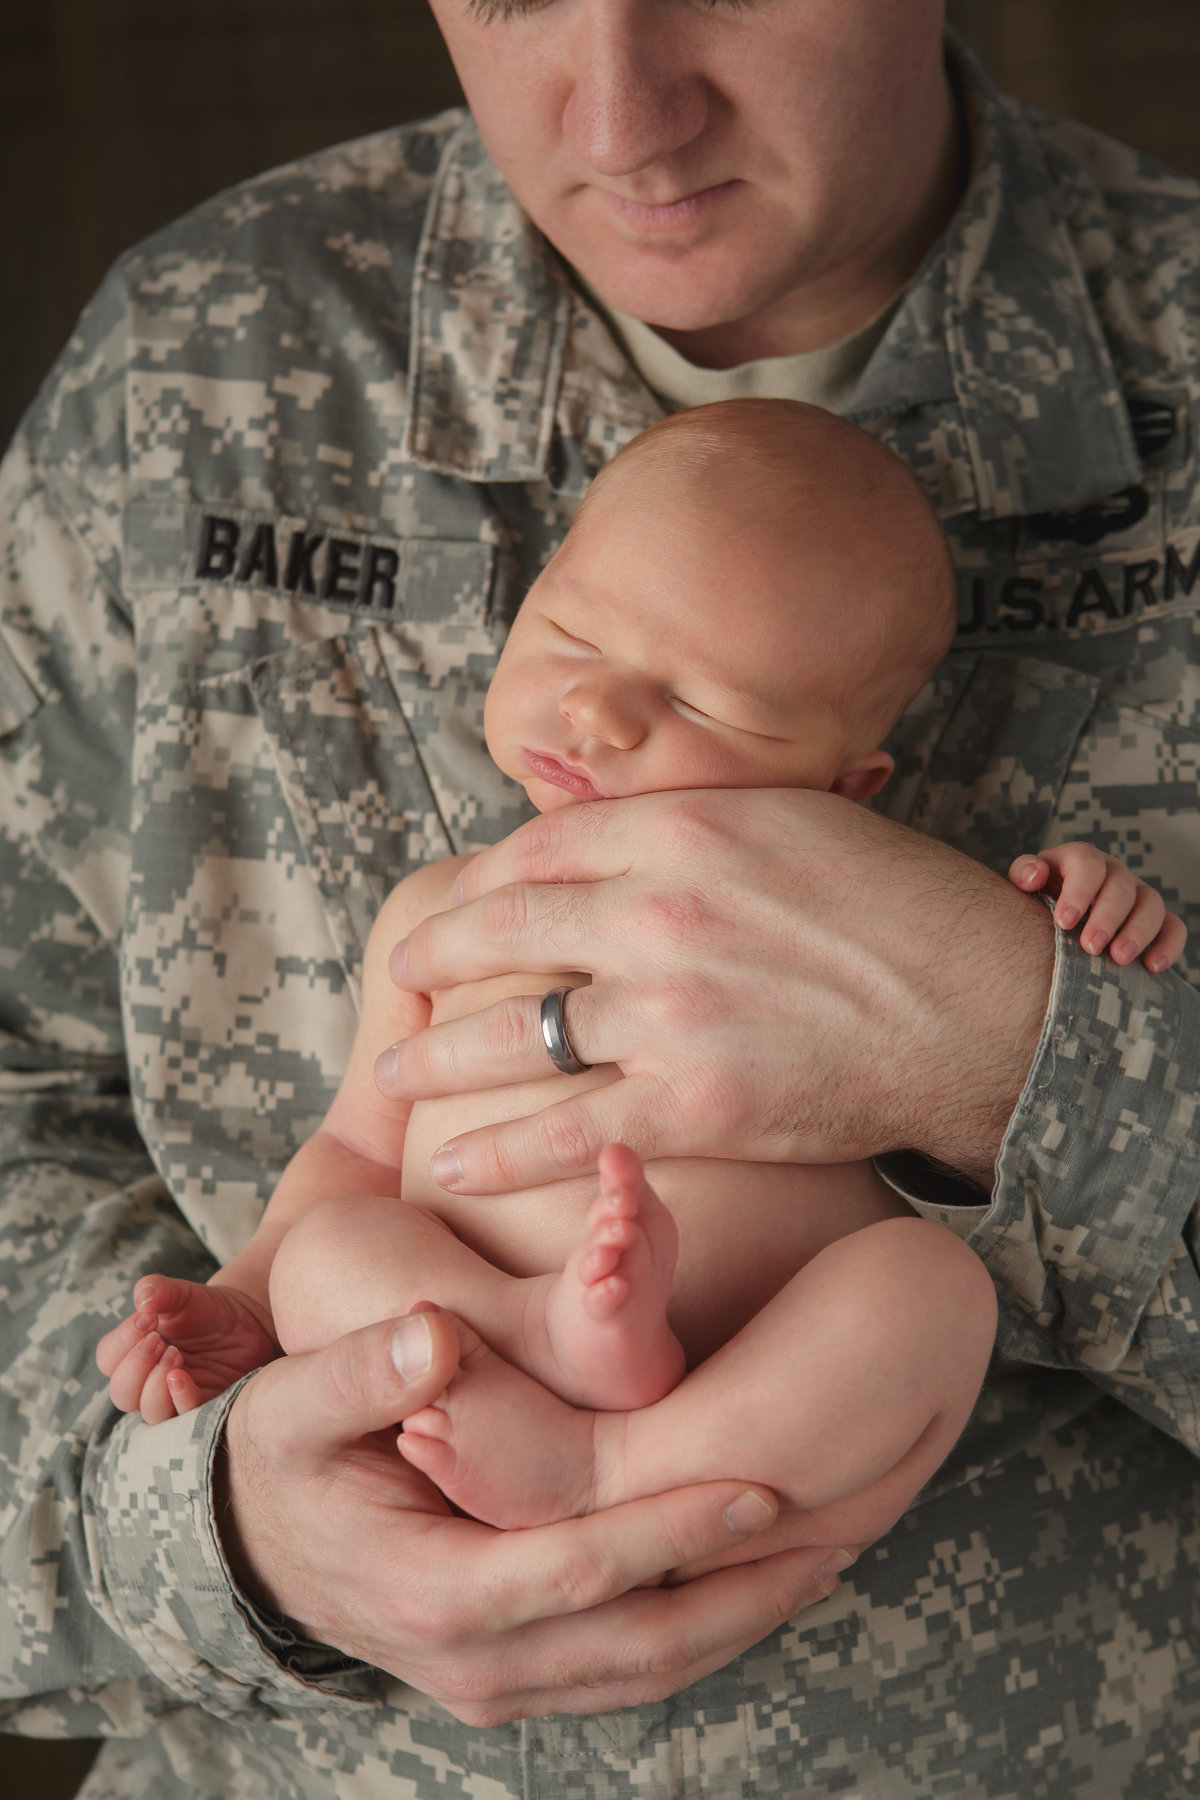 west point ny dad and baby hudson valley army newborn baby photography professional photographer Cornwall NY photo studio